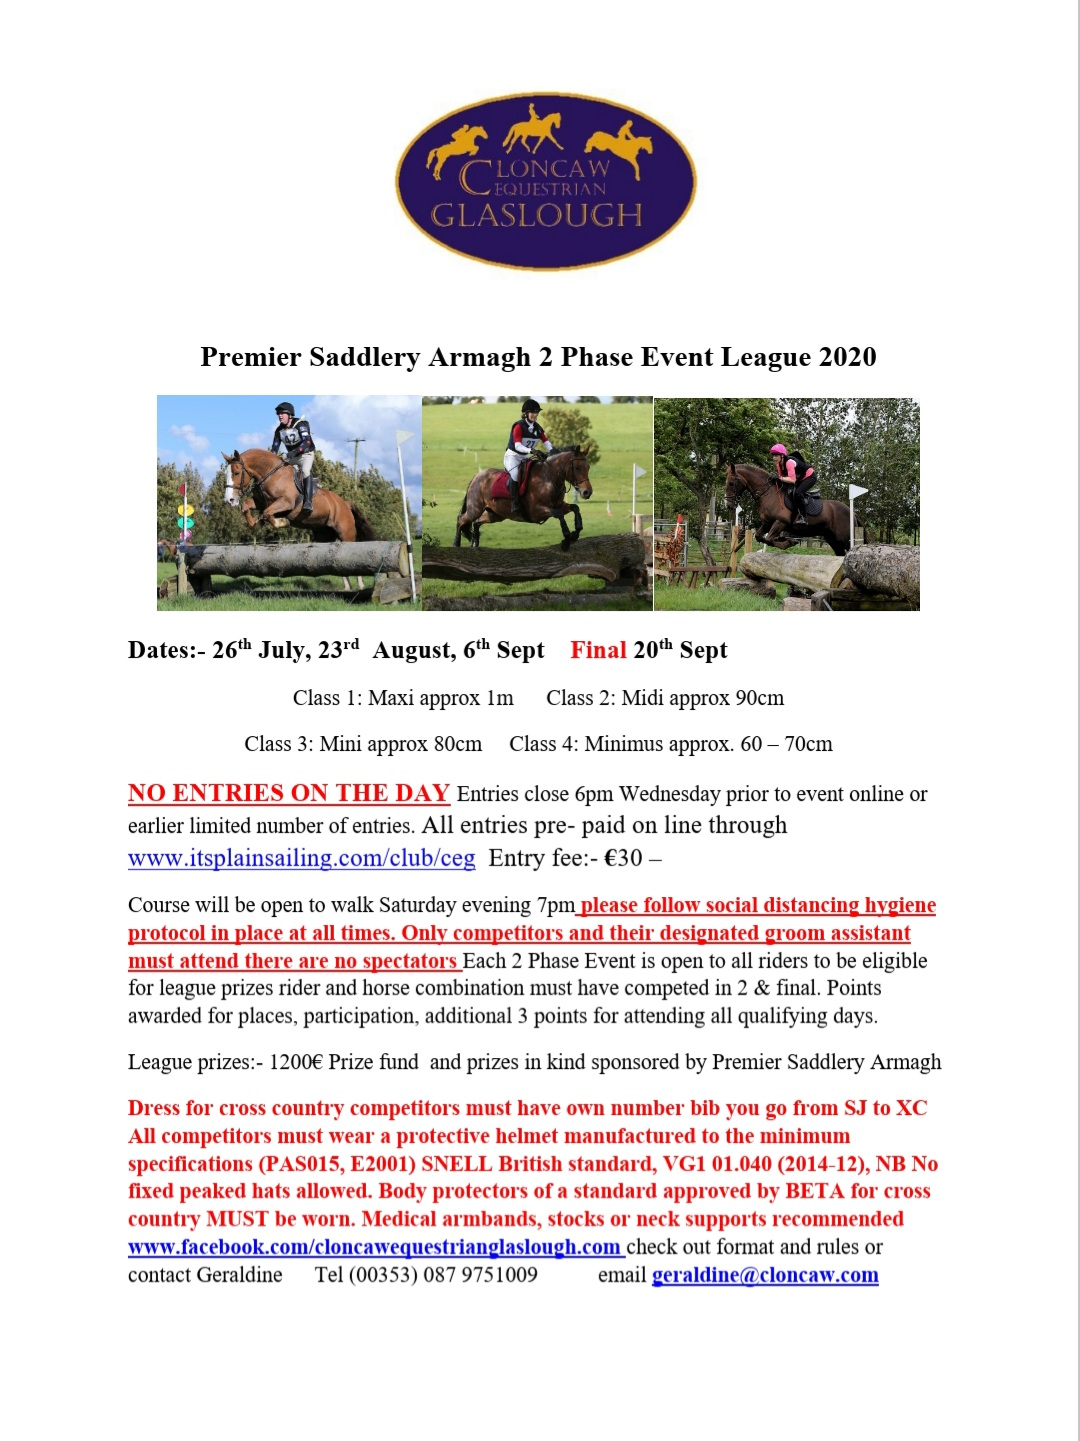 FINAL PREMIER SADDLERY 2 PHASE EVENT LEAGUE